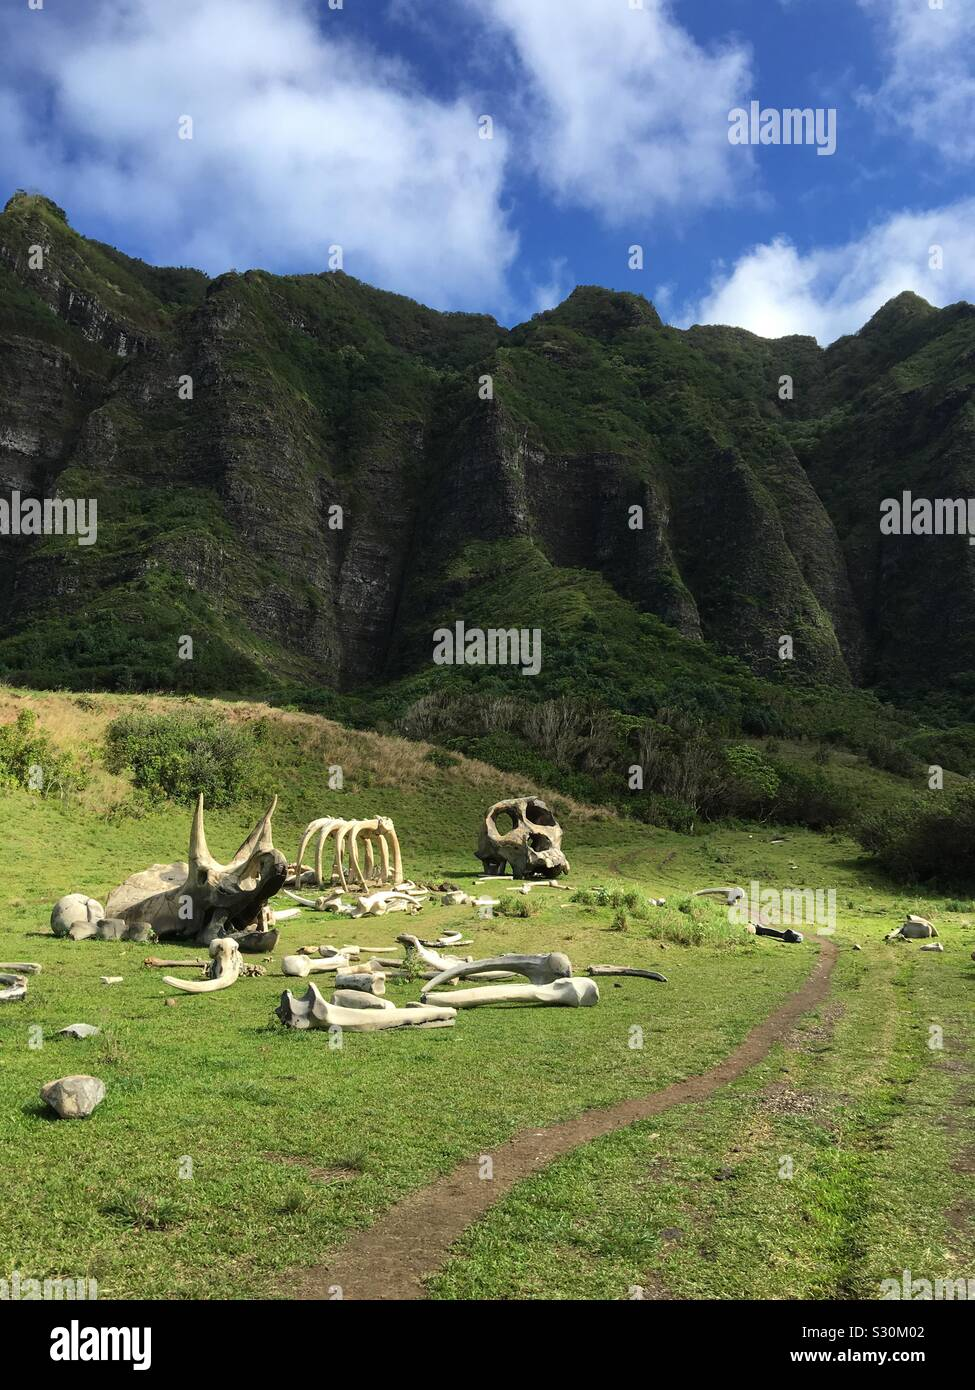 king-kong-movie-location-for-kong-skull-